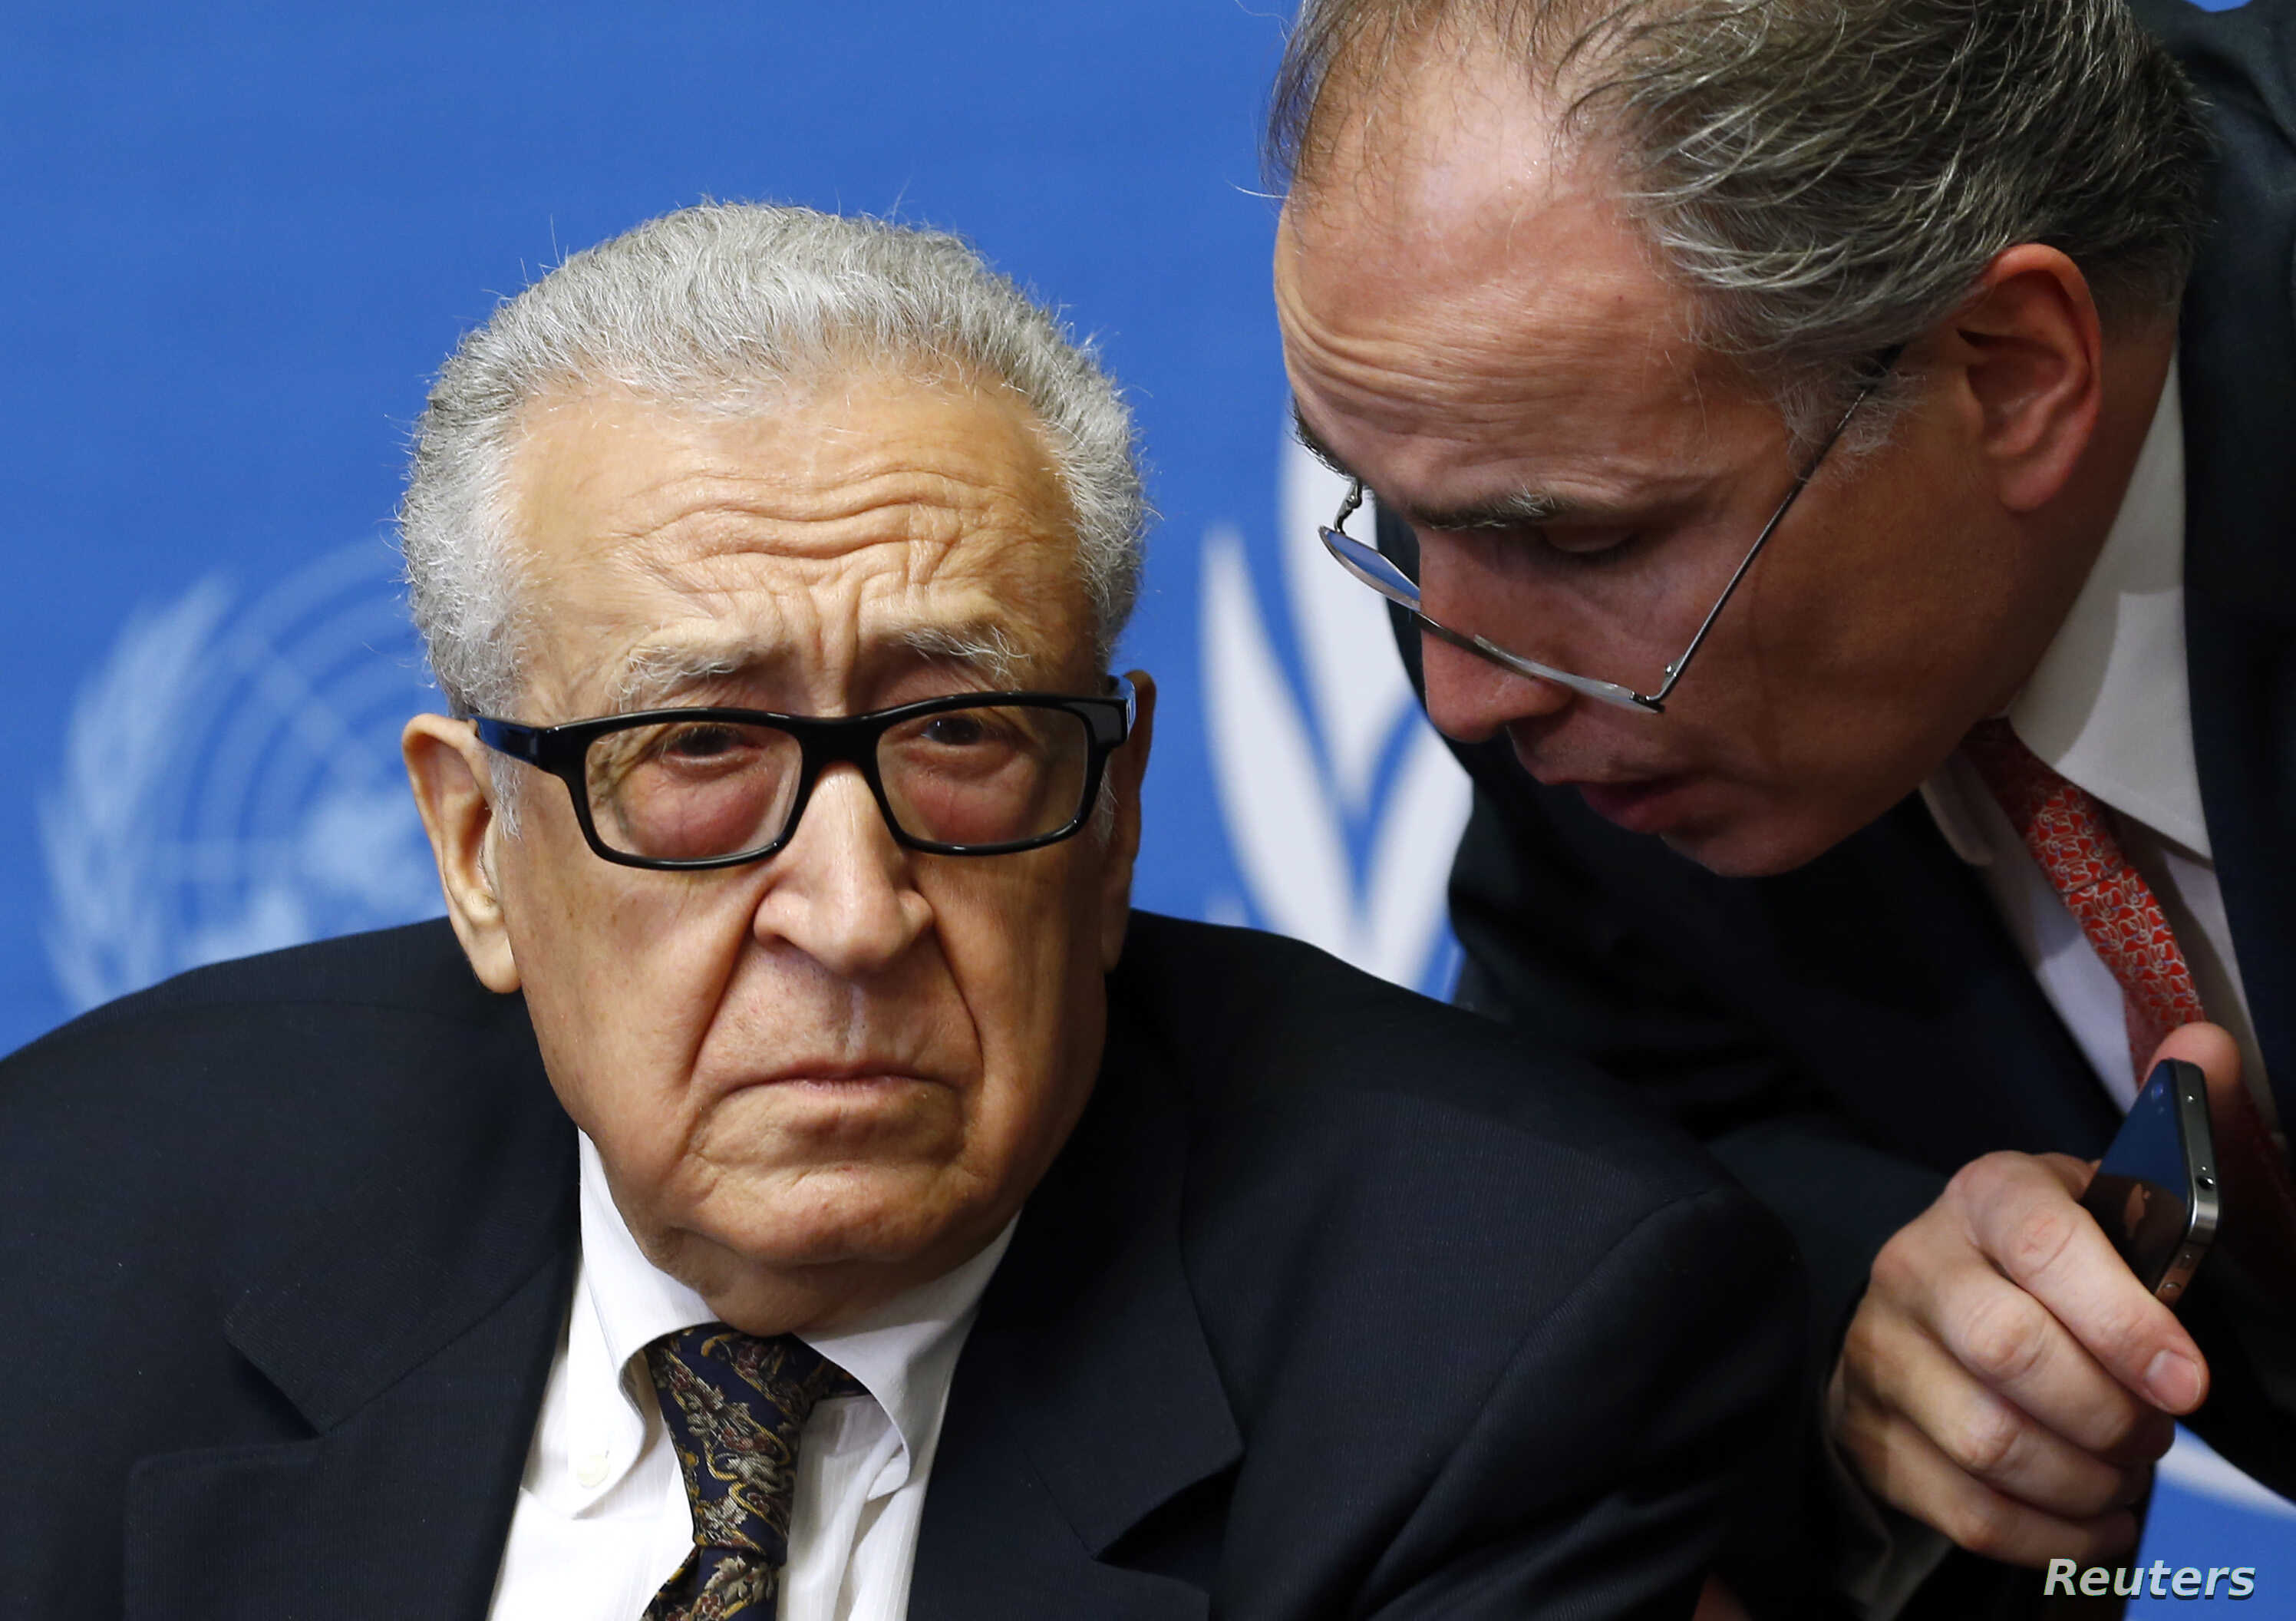 U.N.-Arab League envoy for Syria Lakhdar Brahimi (L) listens to his adviser Moncef Khane before a news conference at the United Nations European headquarters in Geneva, Feb. 11, 2014.